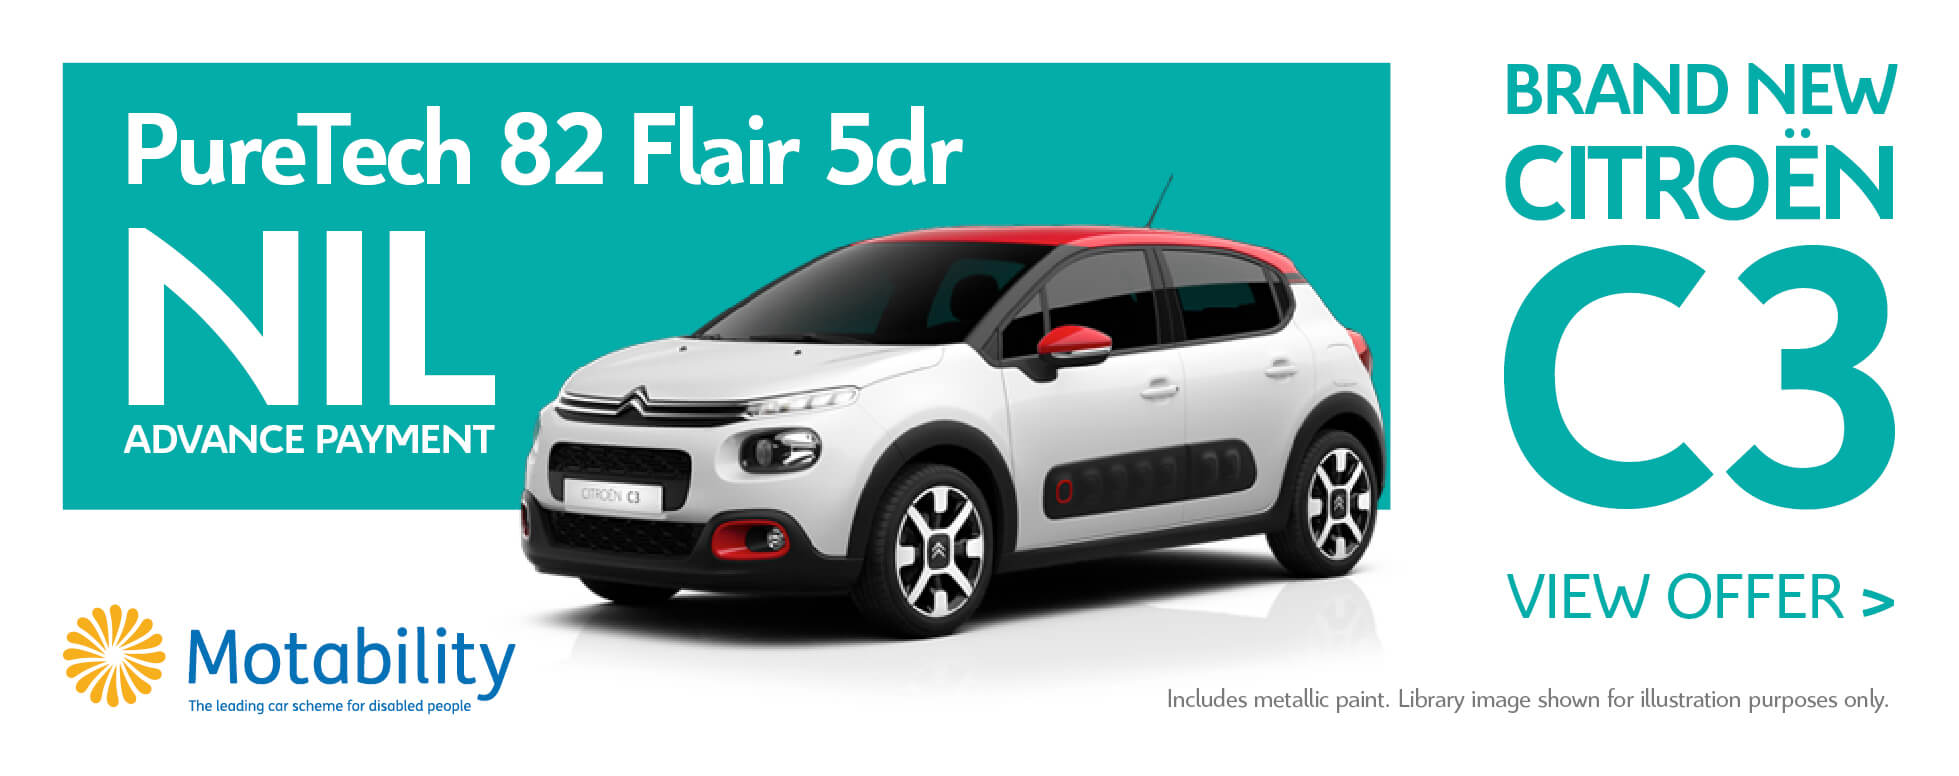 New Citroen C3 - Motab